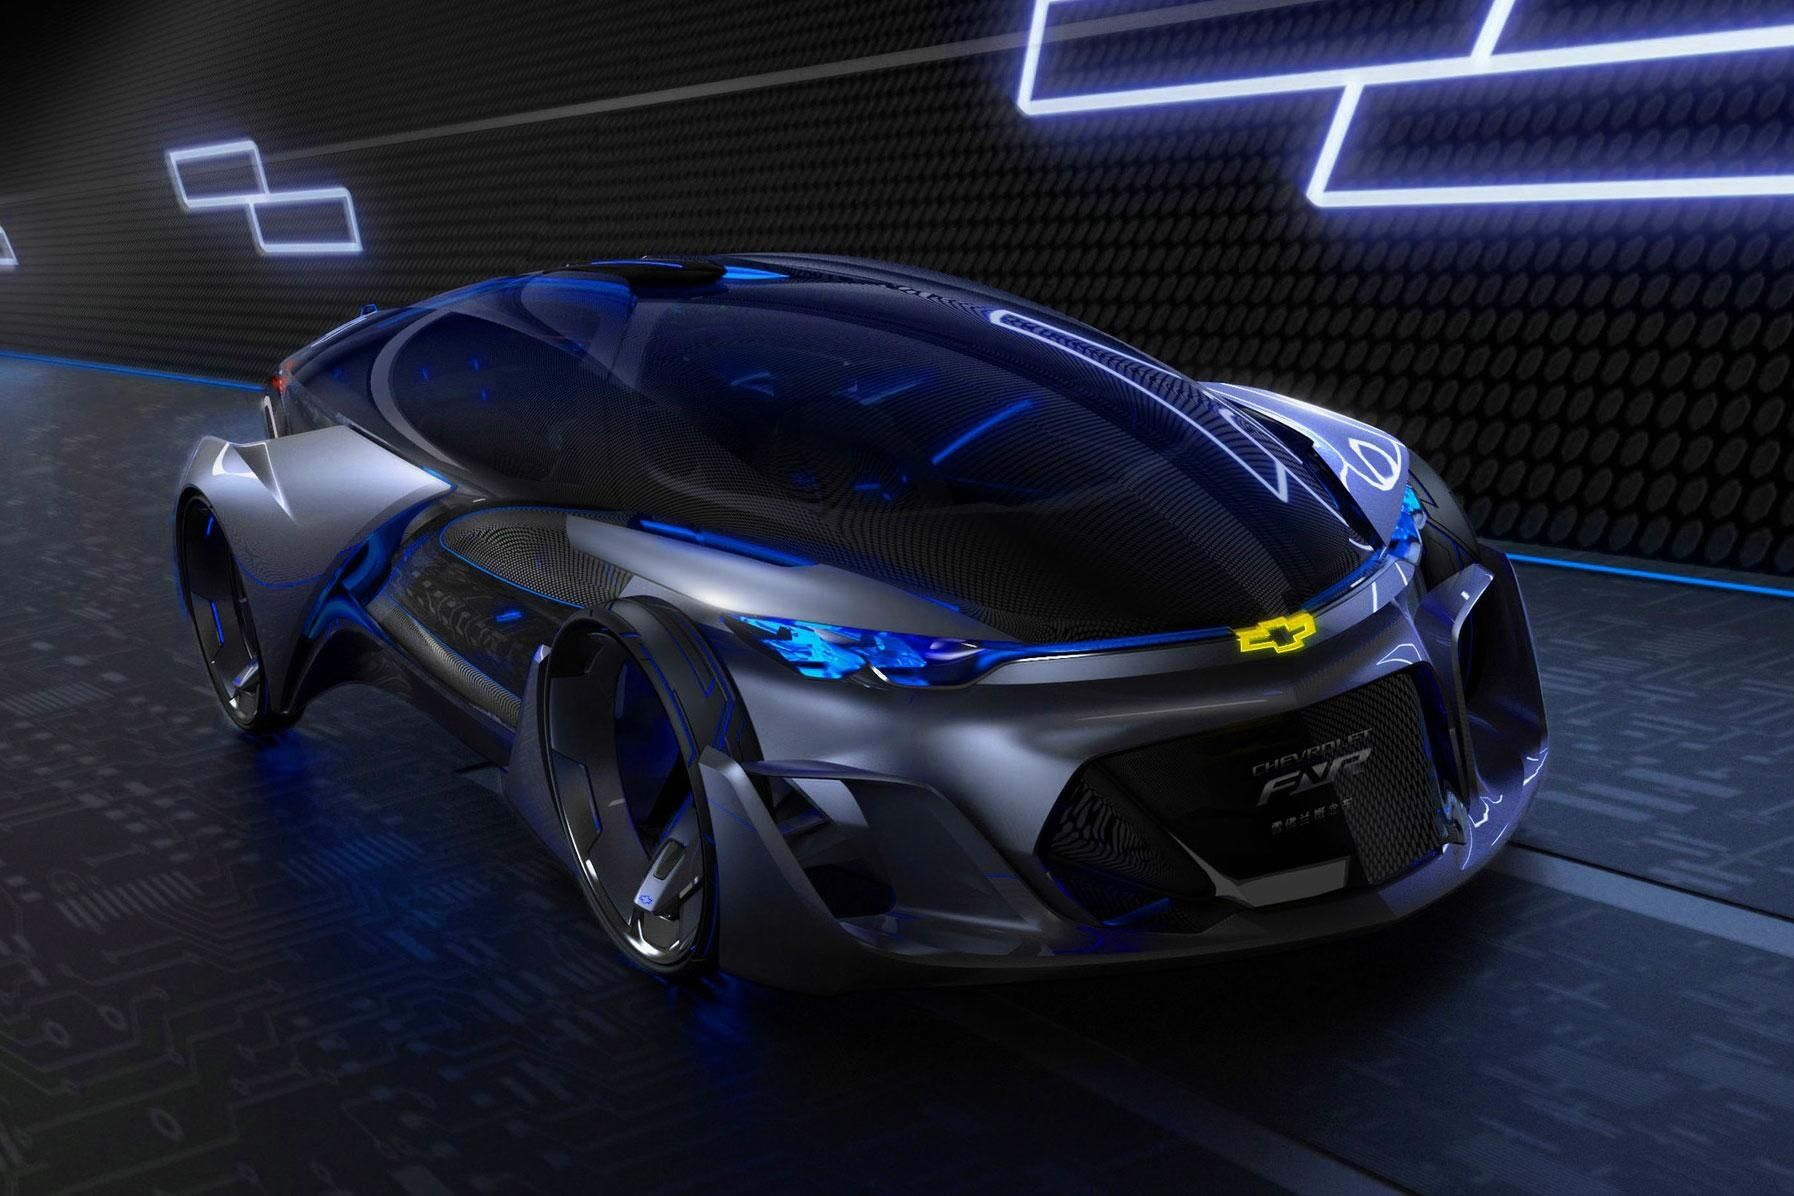 Chevrolet Fnr Concept Concept Cars Upcoming Cars Chevrolet